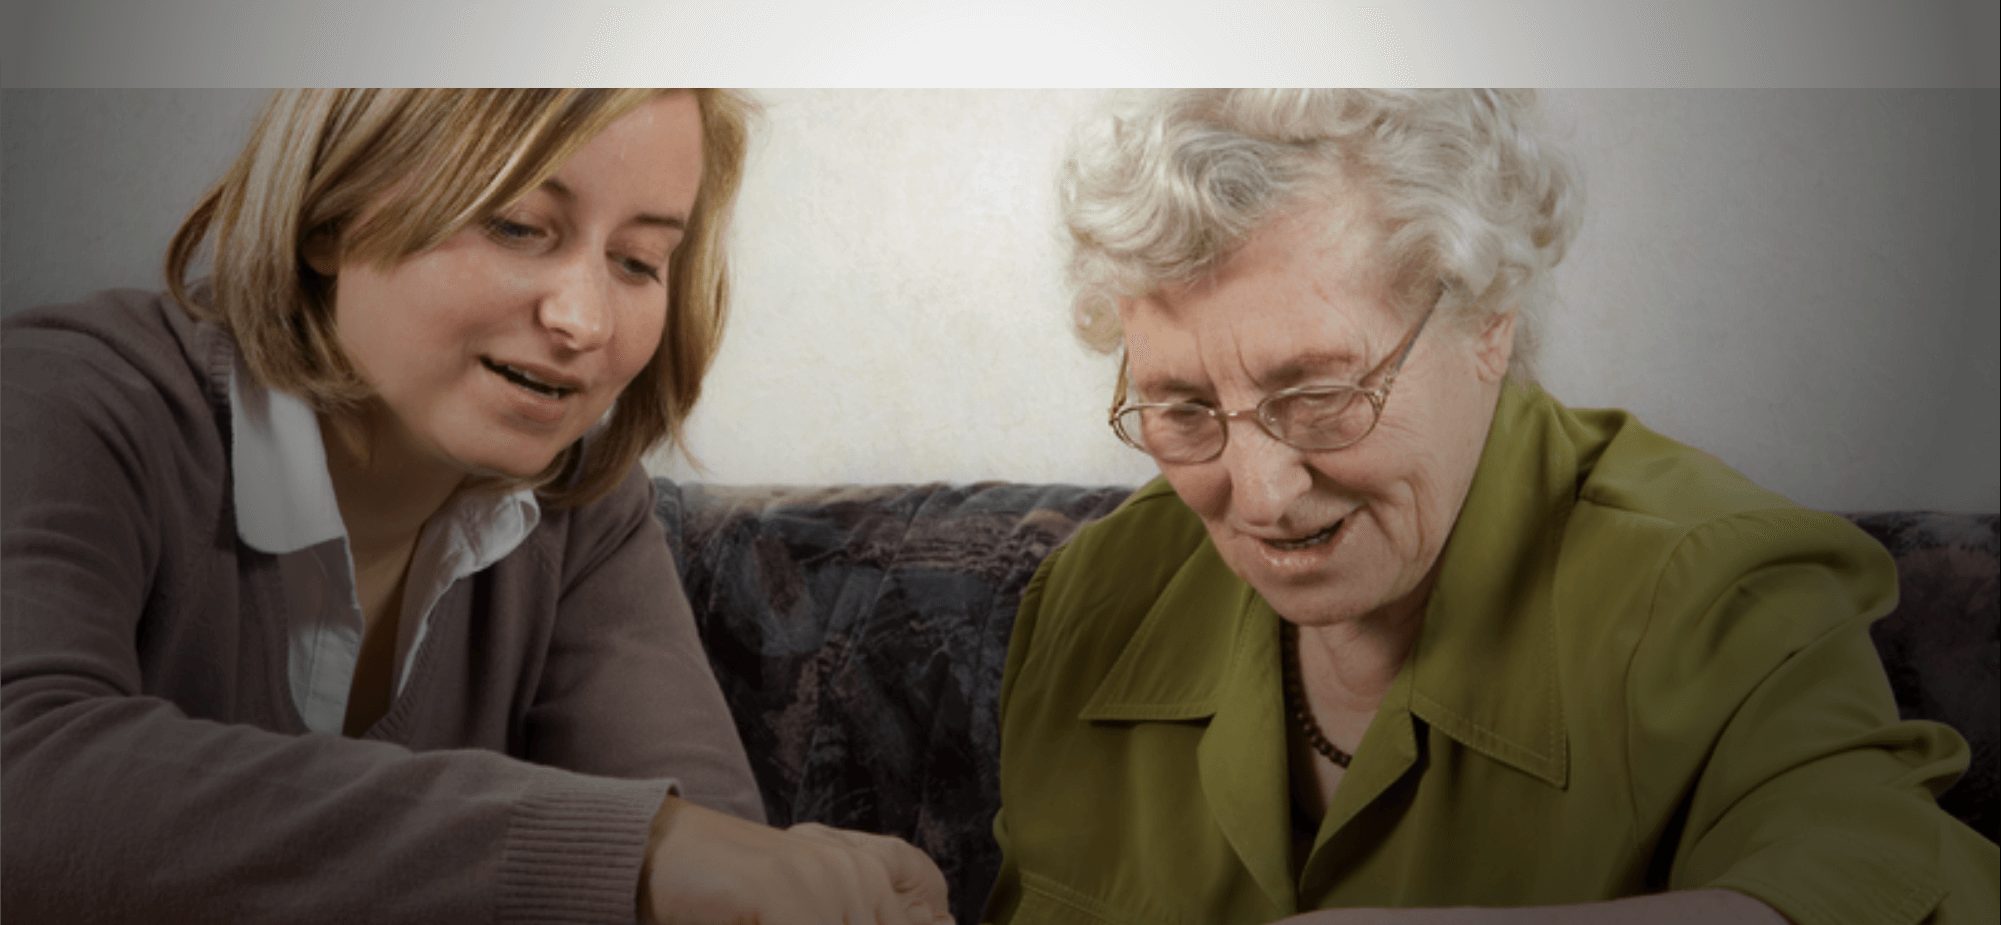 a lady and an old woman playing ludo